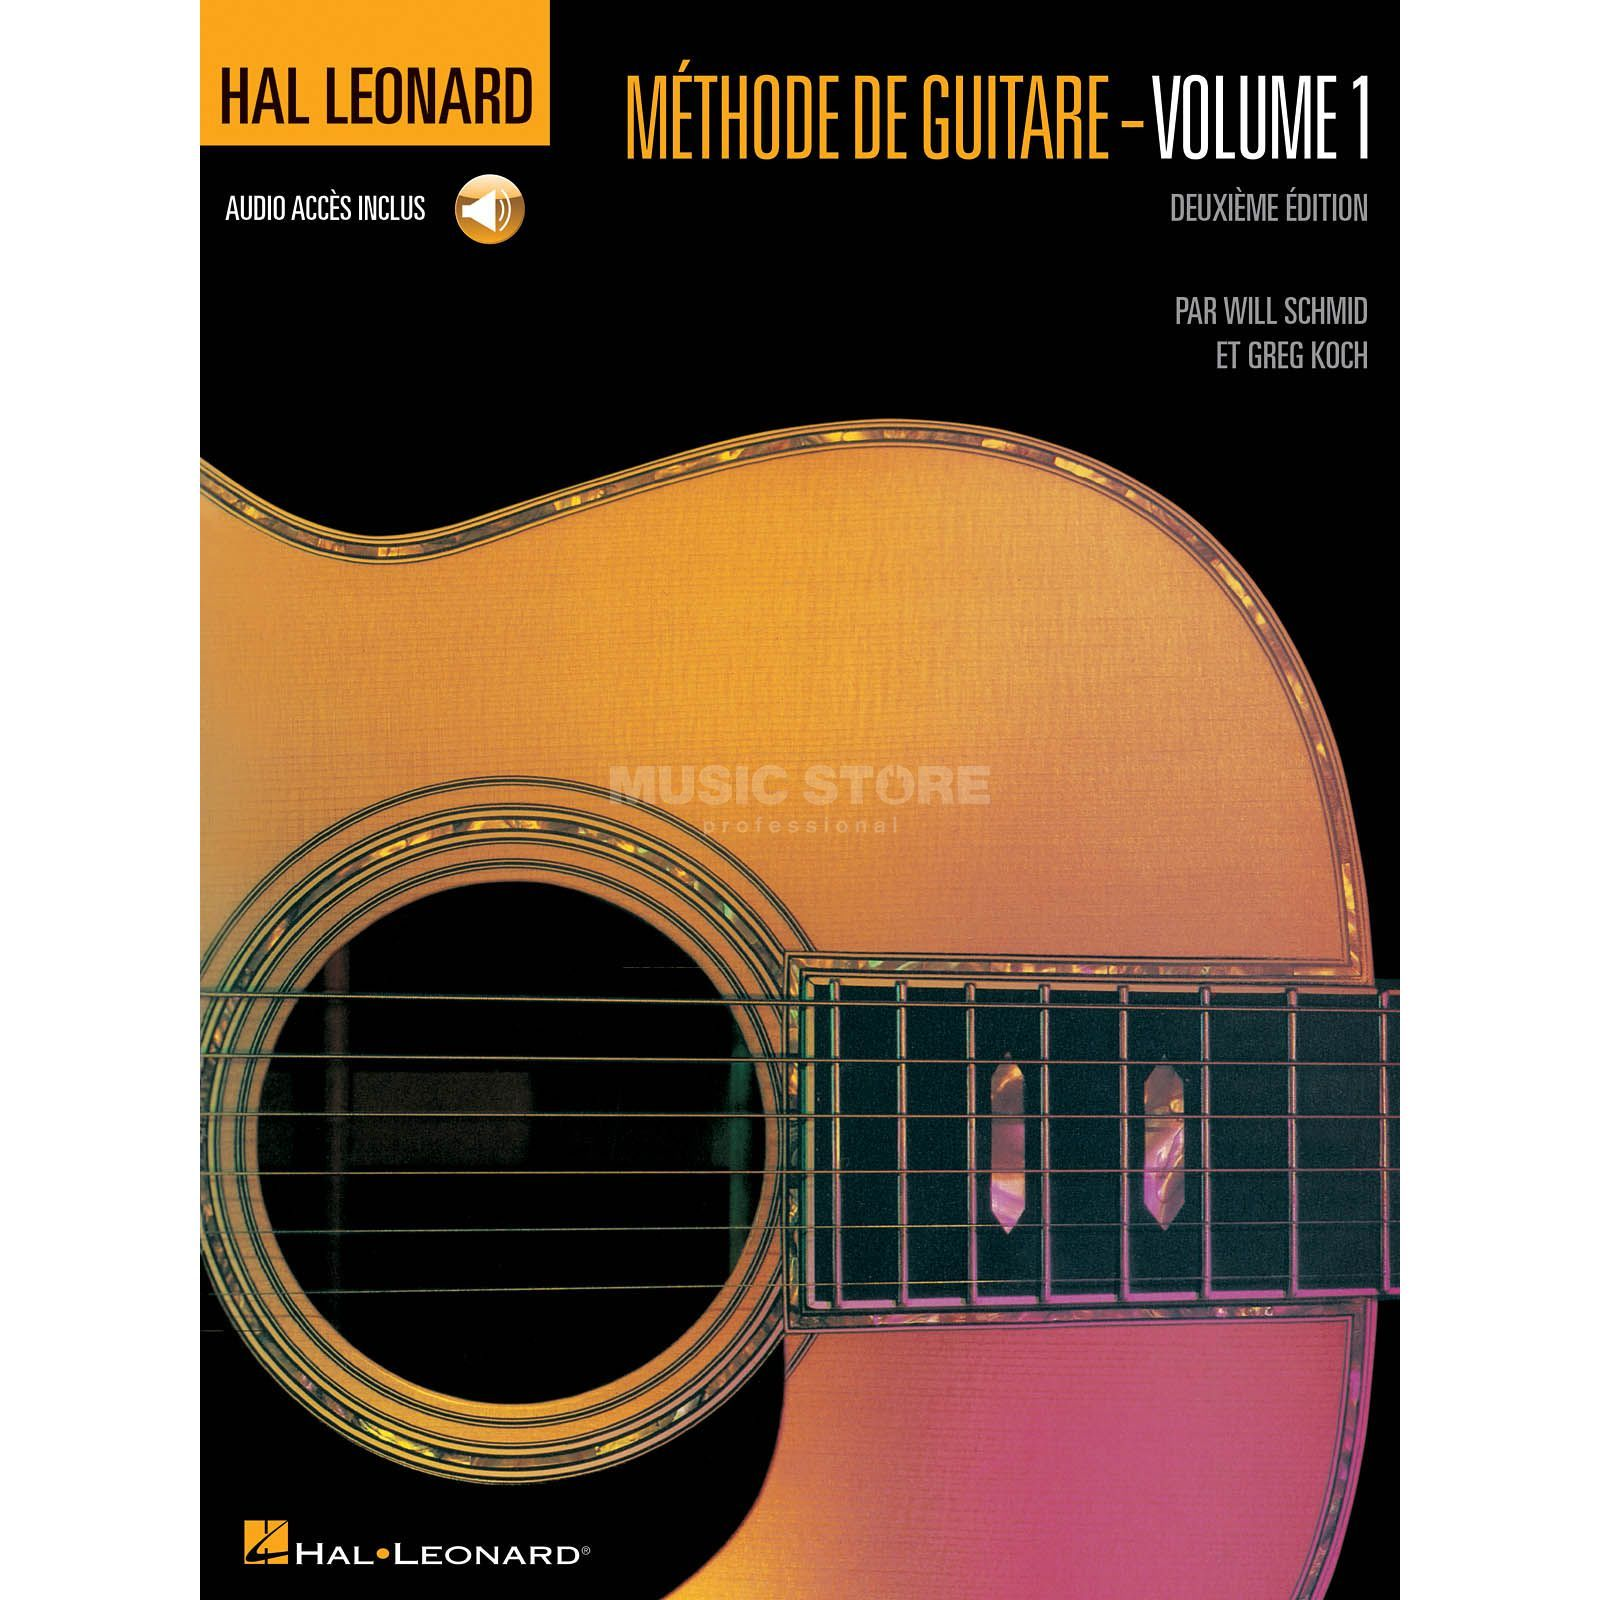 Hal Leonard Methode De Guitare Volume 1 Deuxieme Edition Avec CD Produktbillede